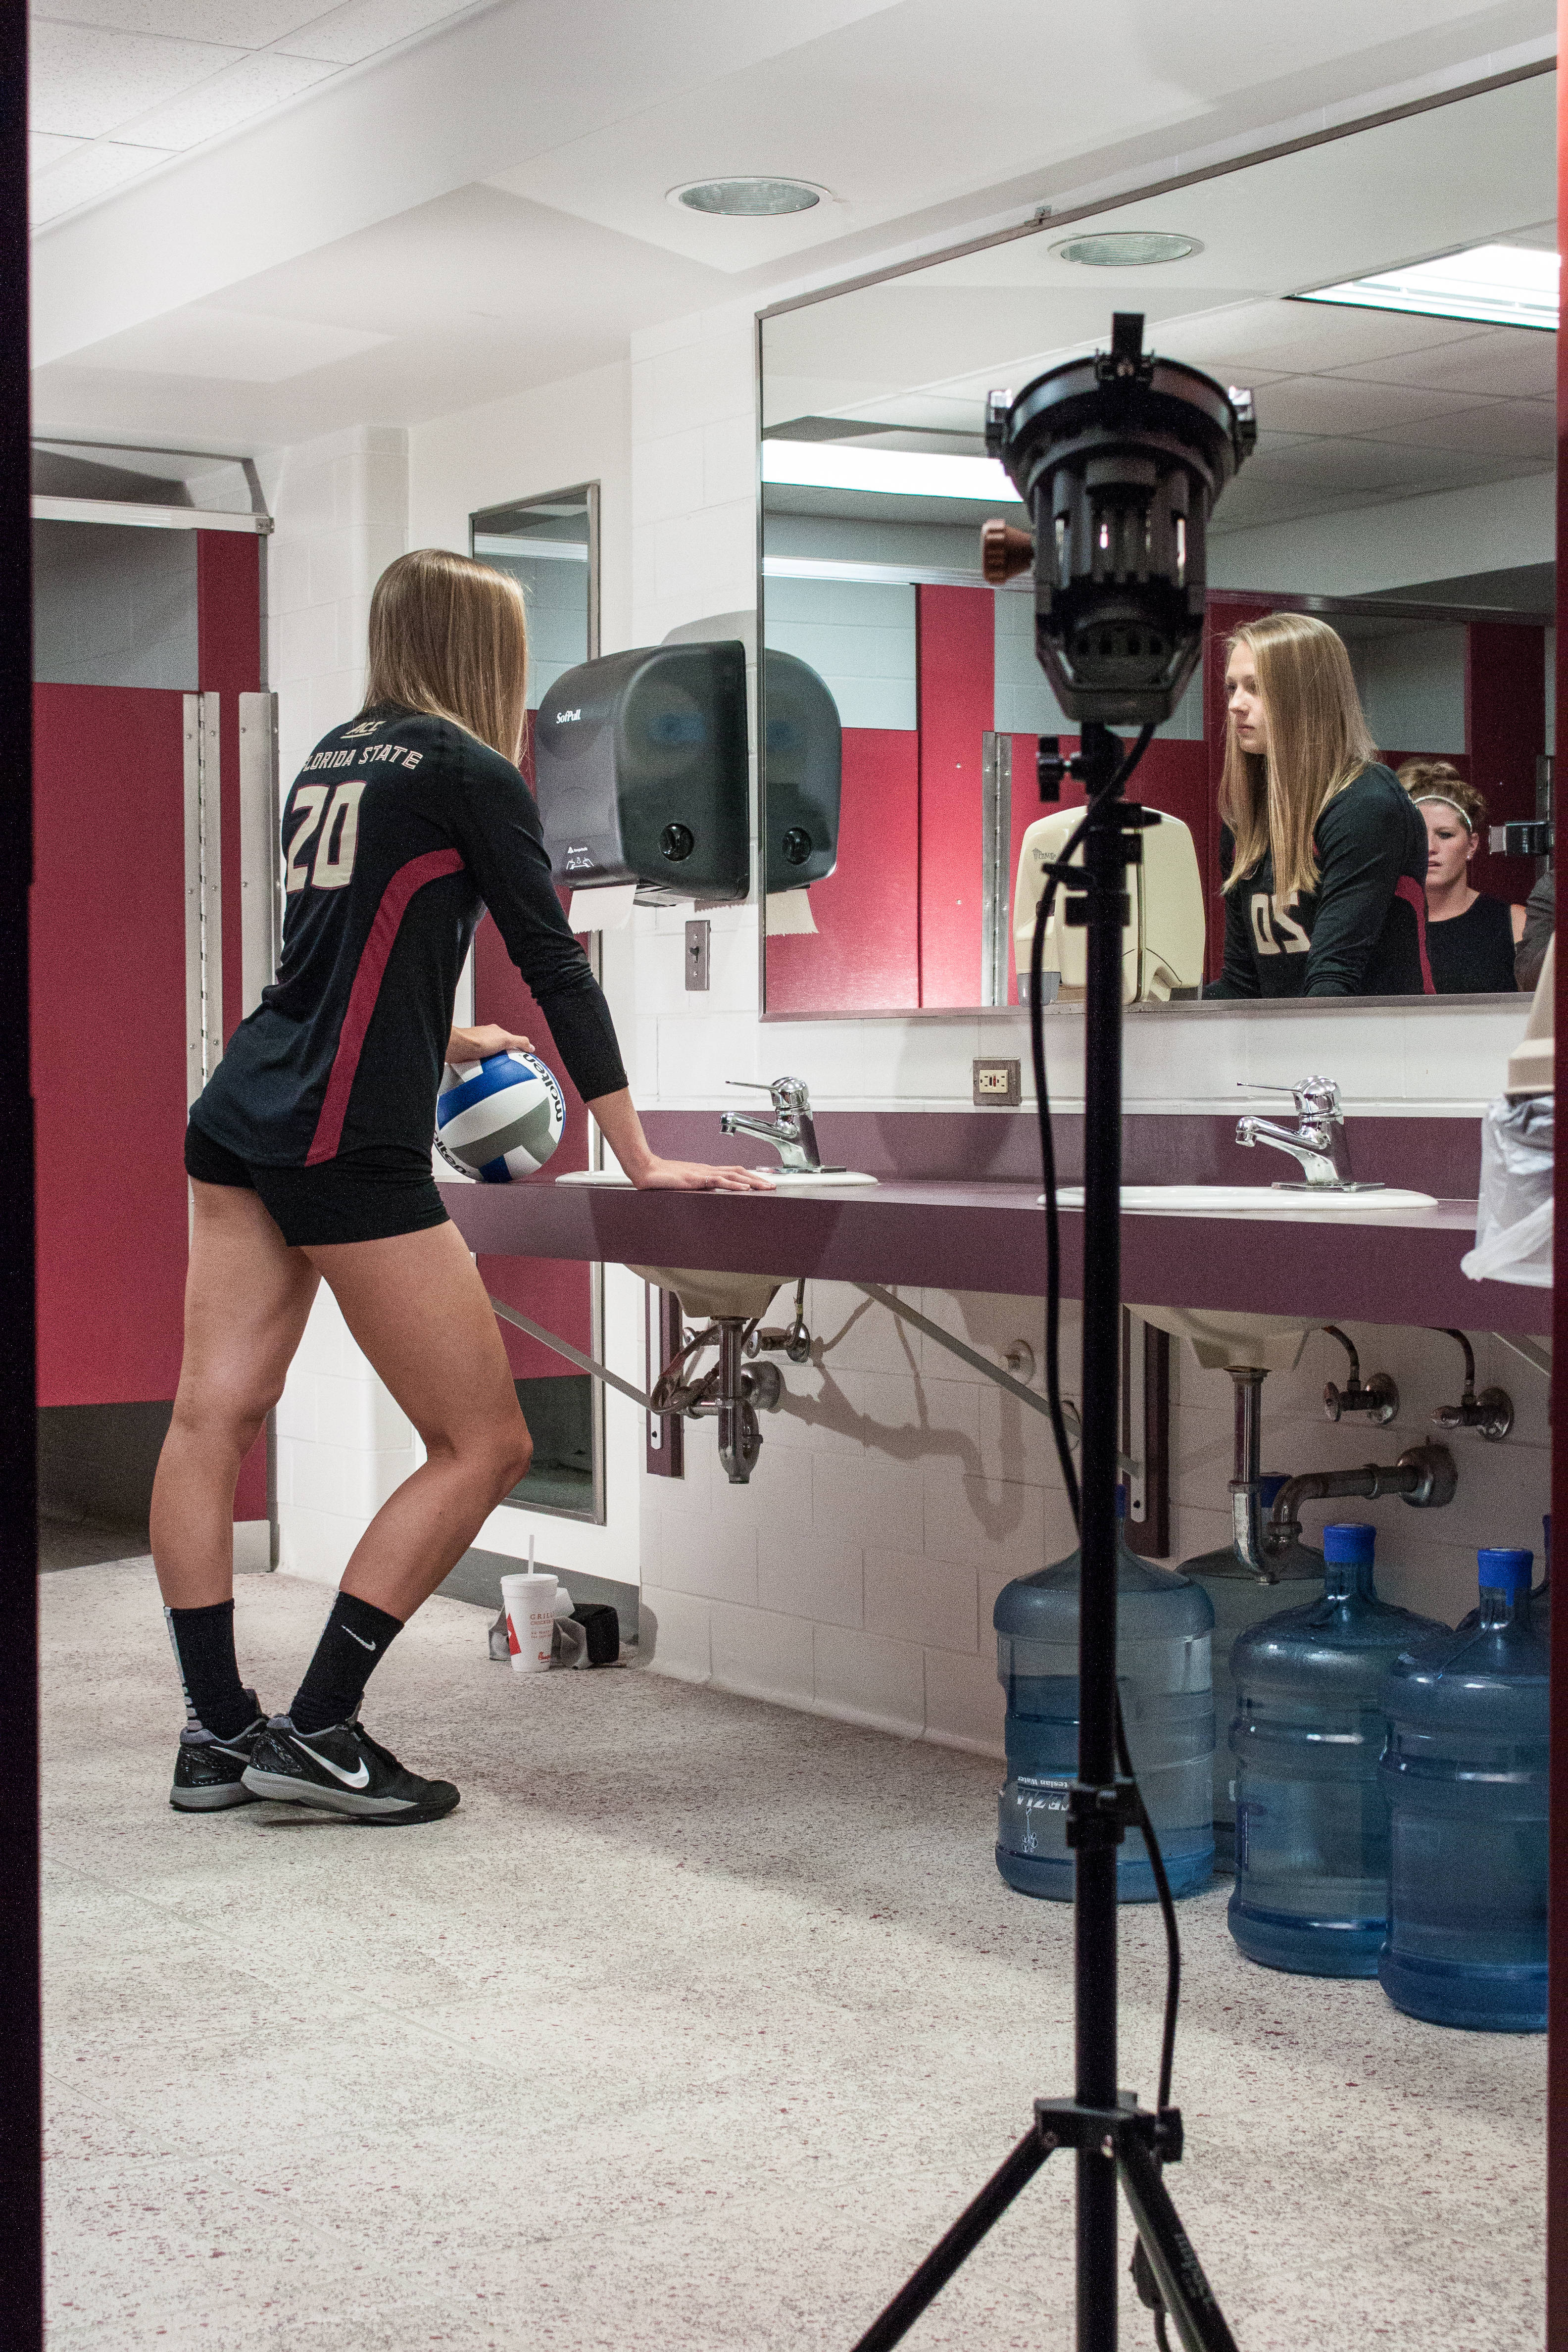 Taking a different approach, Karlie Hauer looks in the mirror.